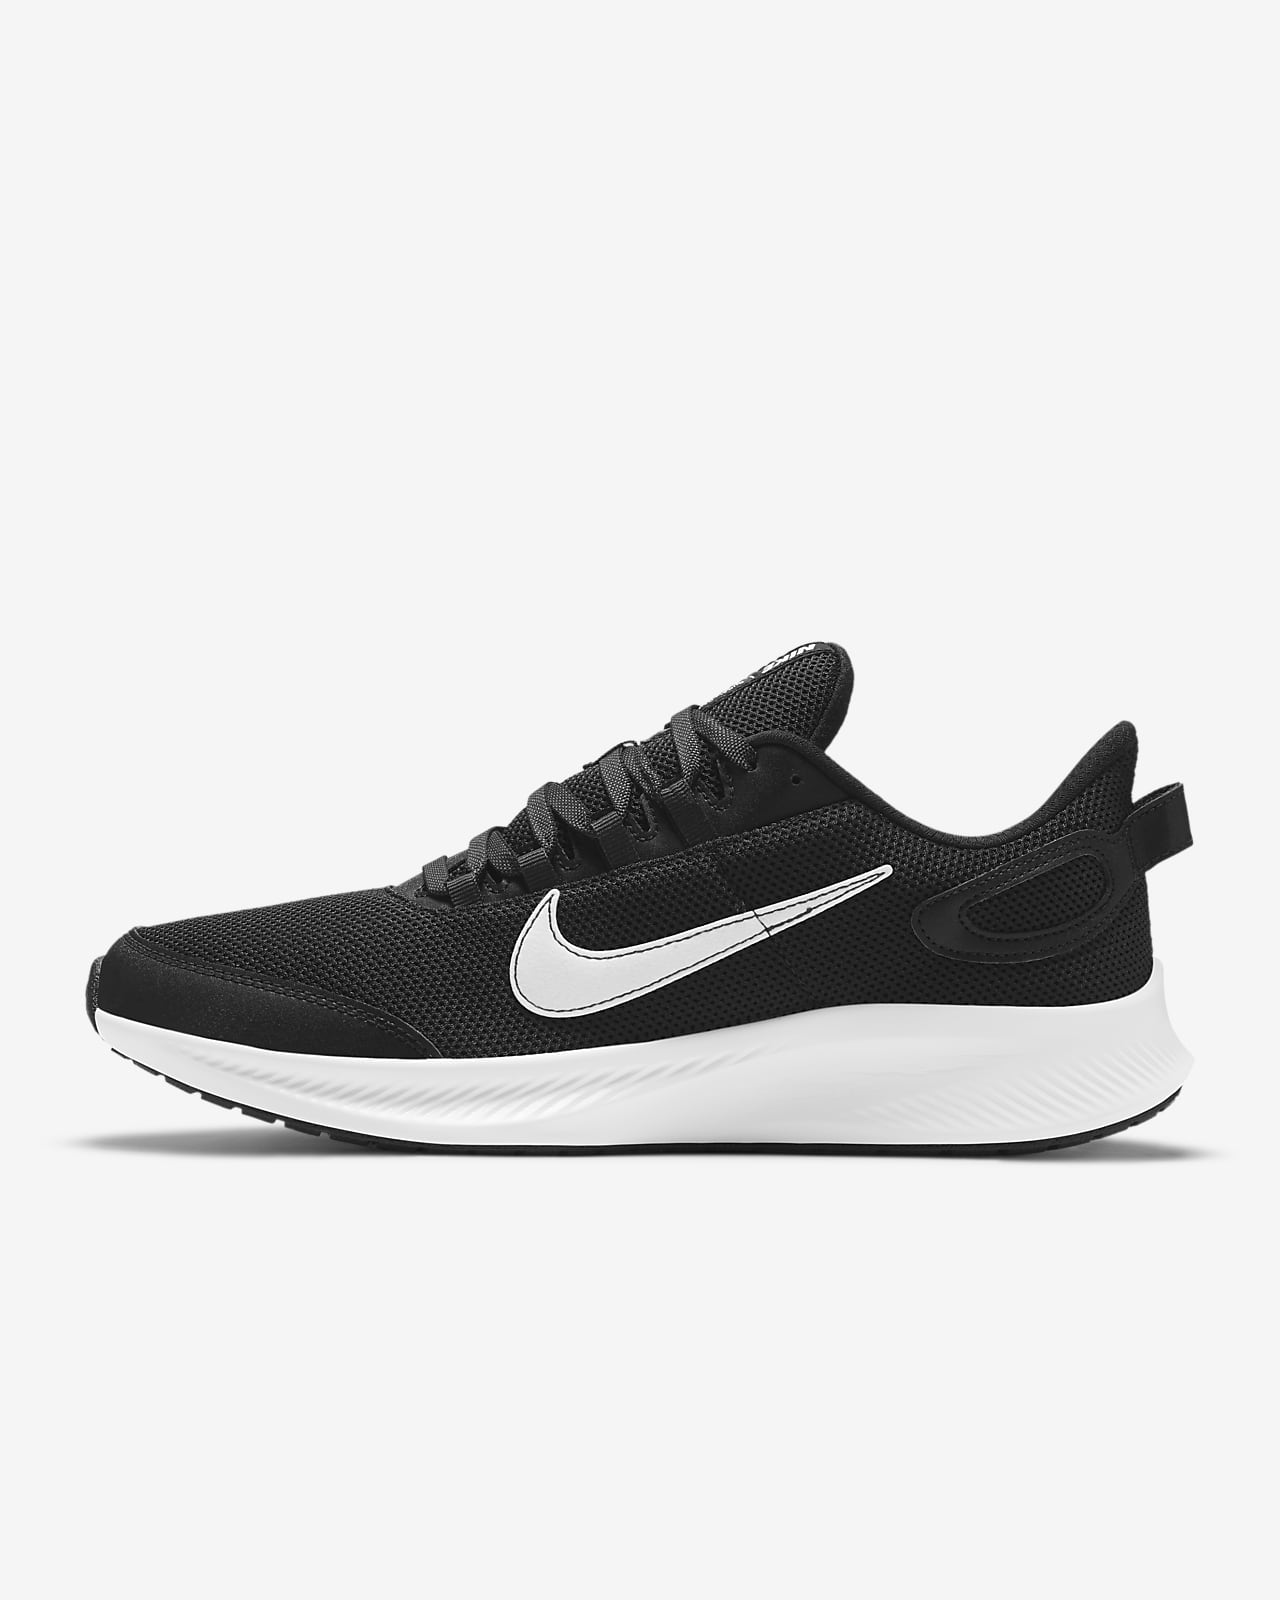 Chaussure de running Nike Run All Day 2 pour Homme